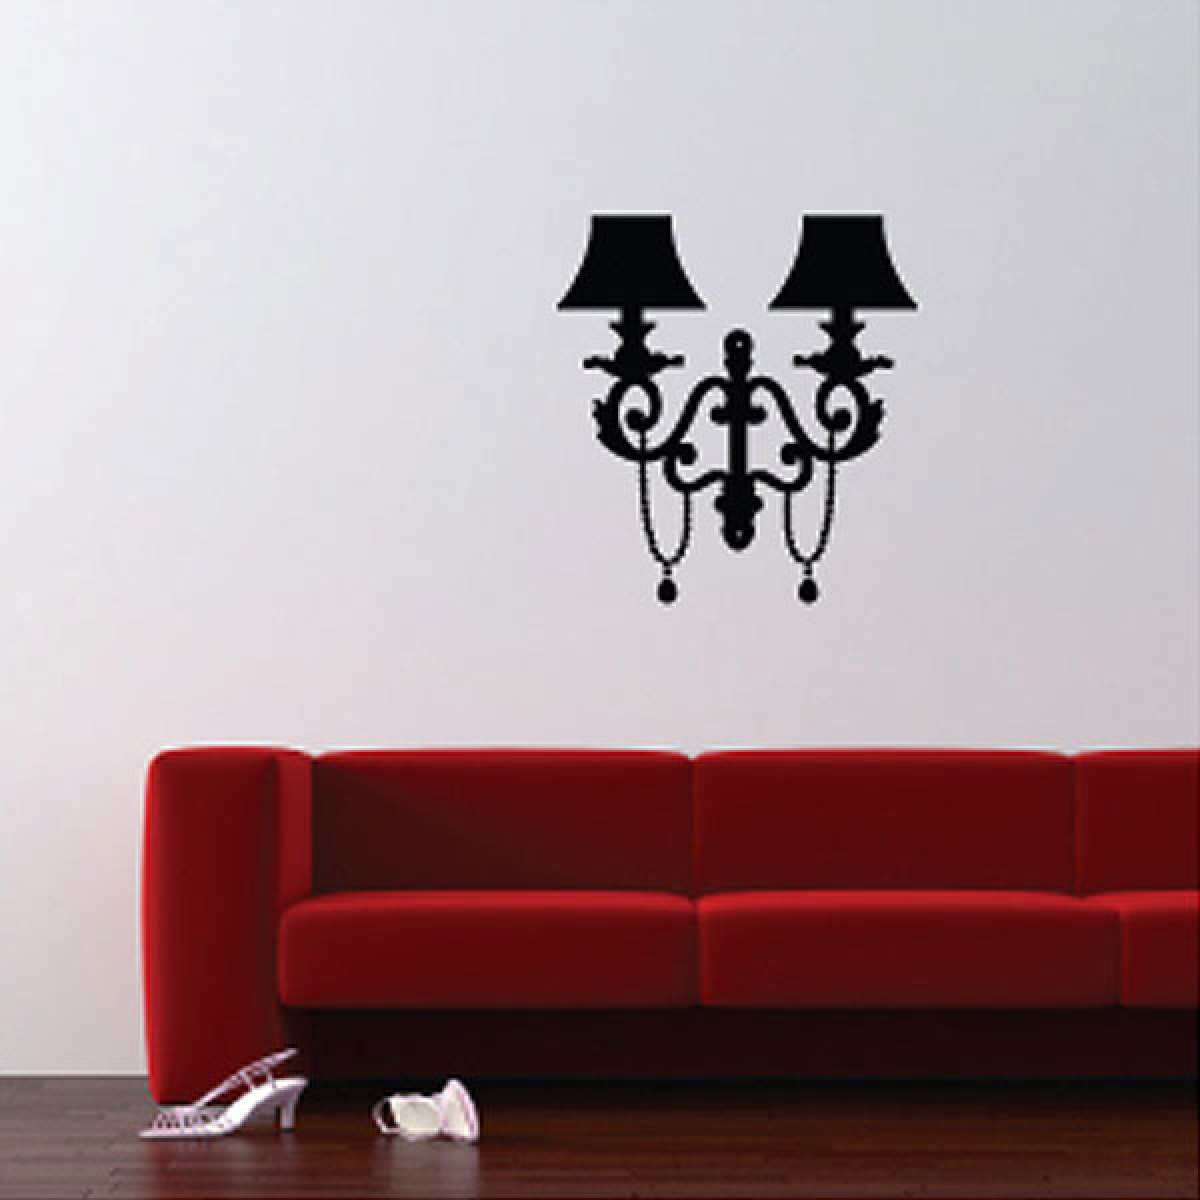 wall lamp wall sticker classical wall light sticker